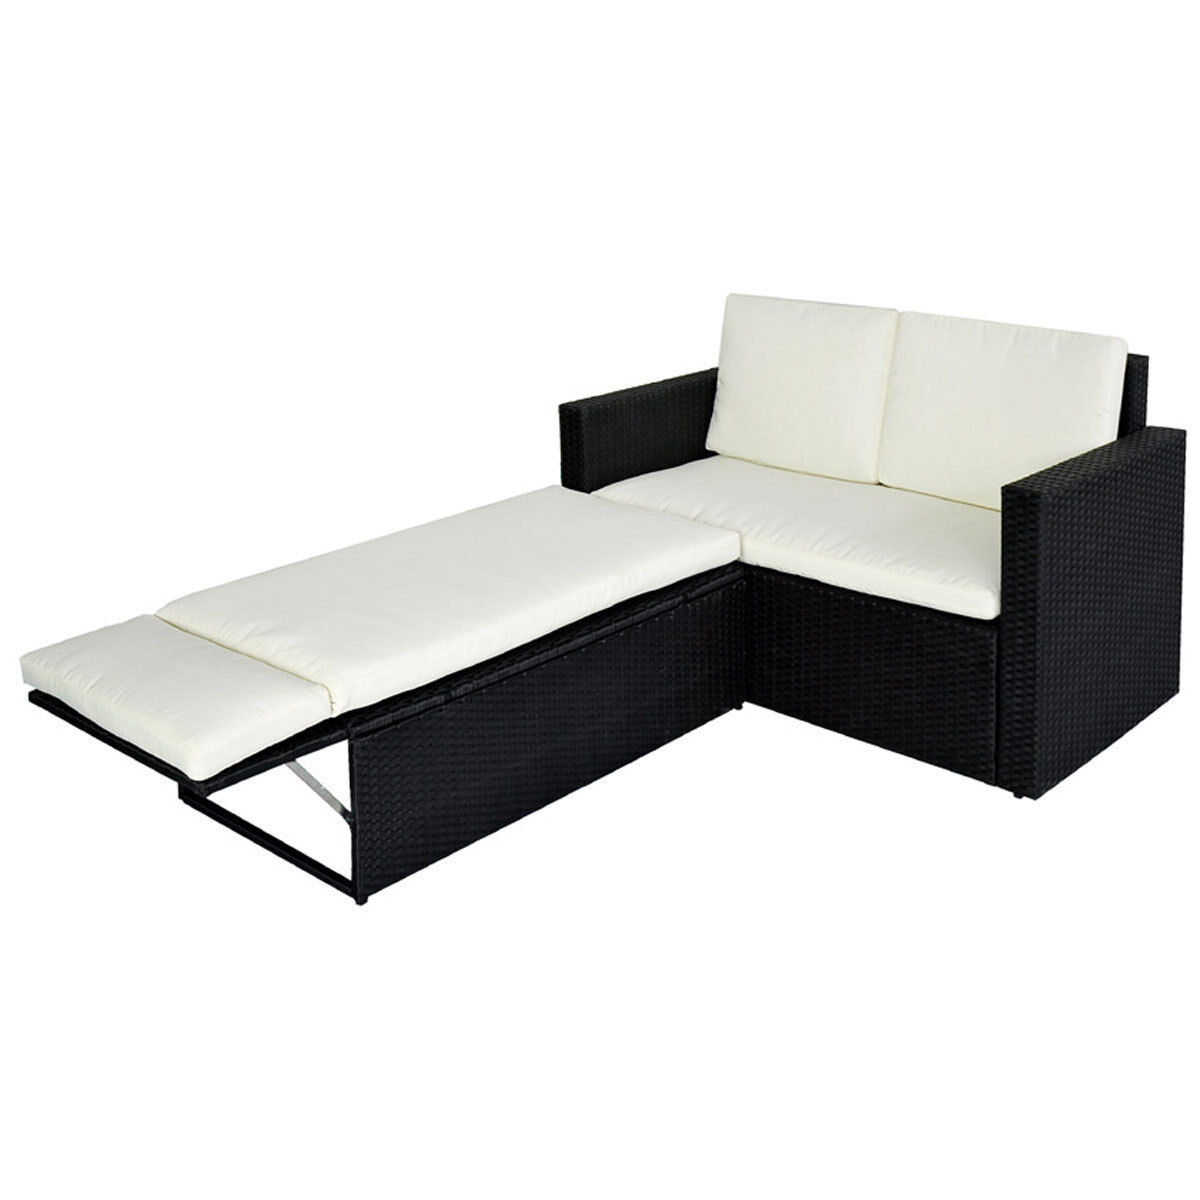 poly rattan lounge schwarz sofa garnitur polyrattan. Black Bedroom Furniture Sets. Home Design Ideas